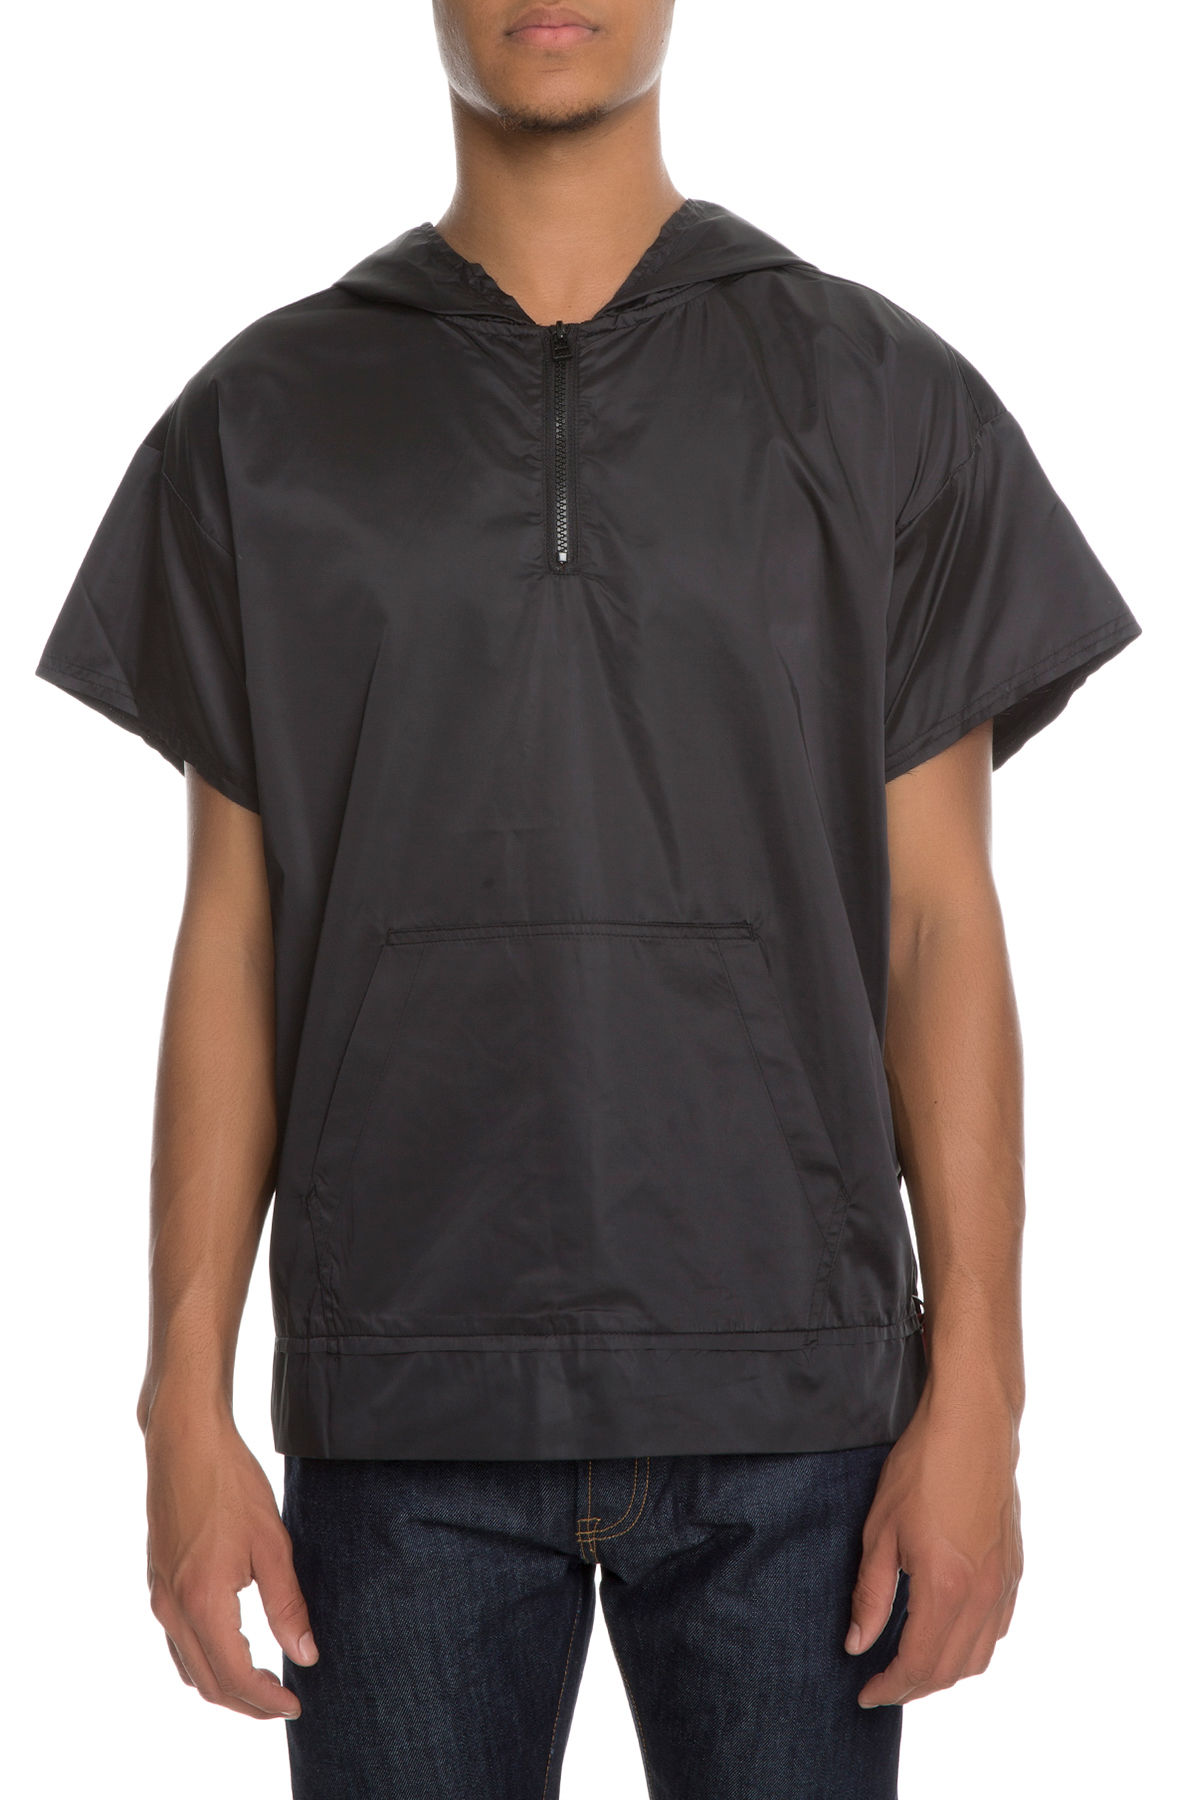 Image of The Falco Short Sleeve Pullover Hoodie in Vanta Black